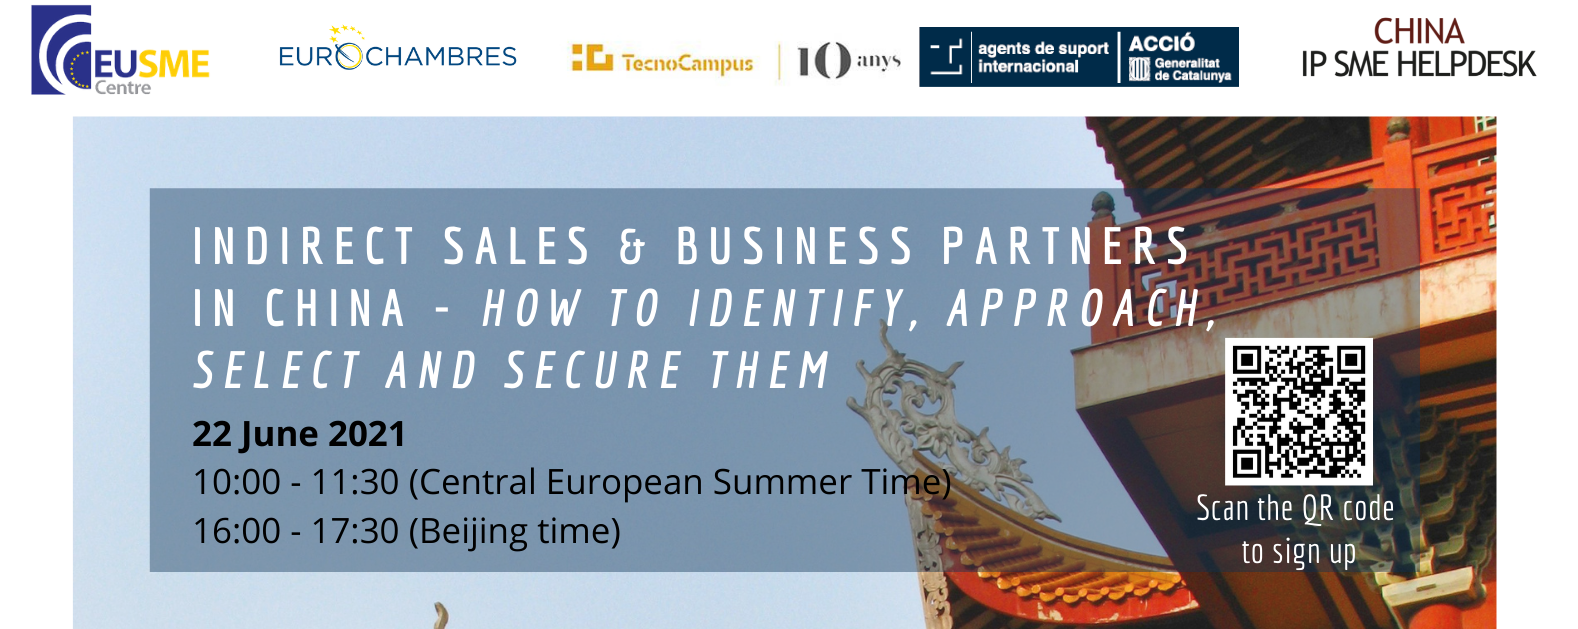 Indirect Sales & Business Partners in China: How to identify, approach, select and secure them